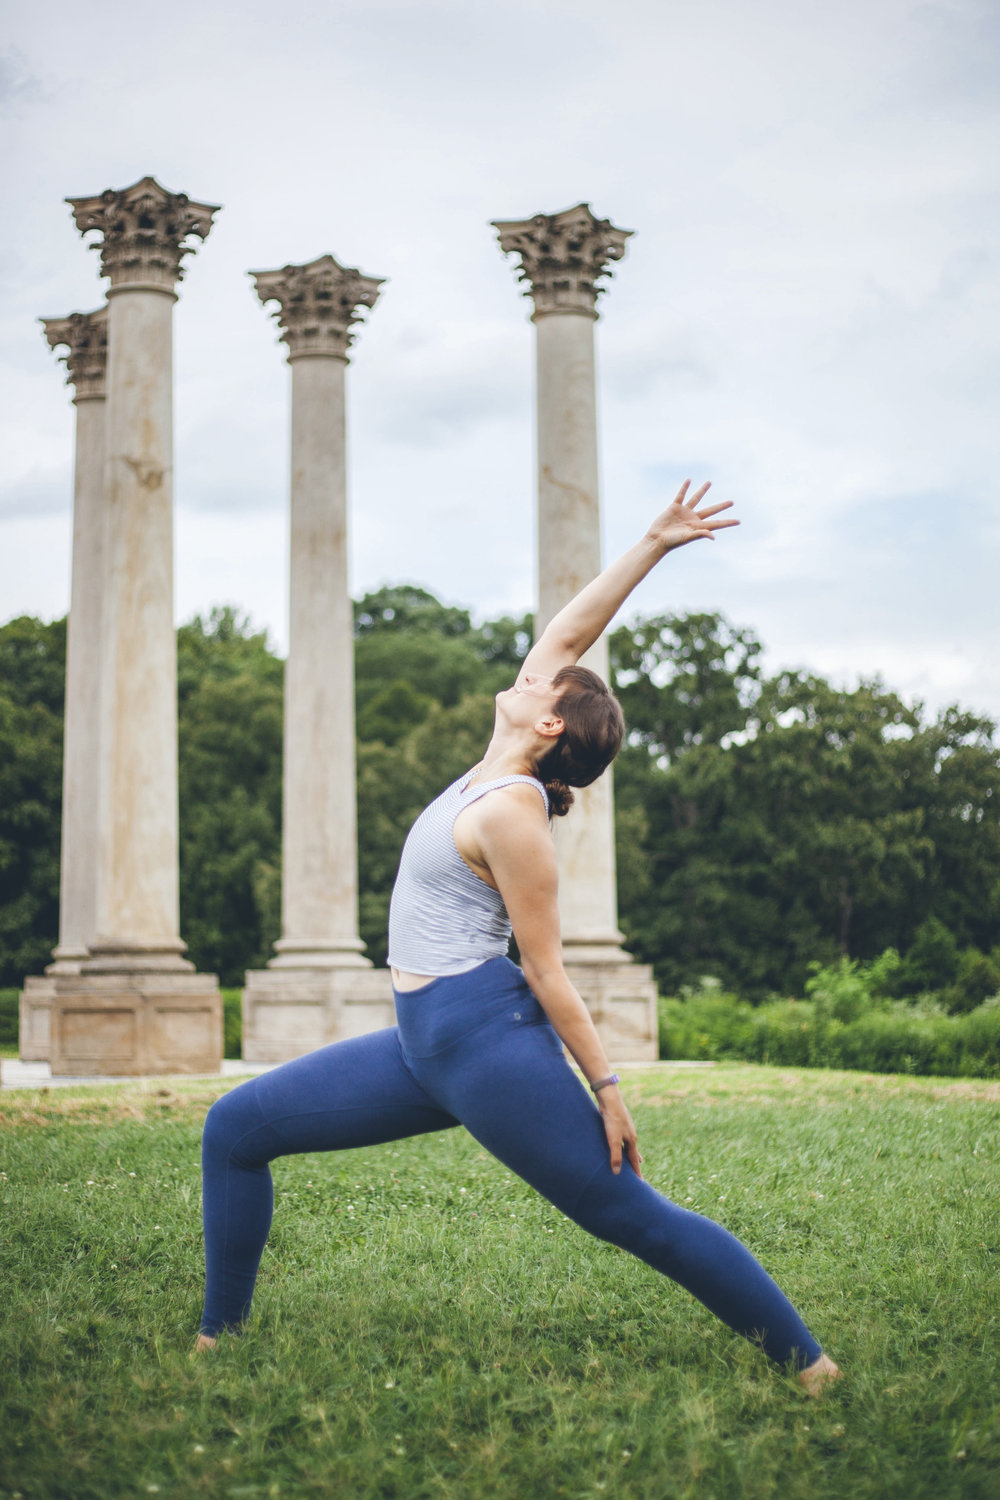 Virabhadrasana (warrior poses) is comprised of the Sanskrit terms for hero and friend.